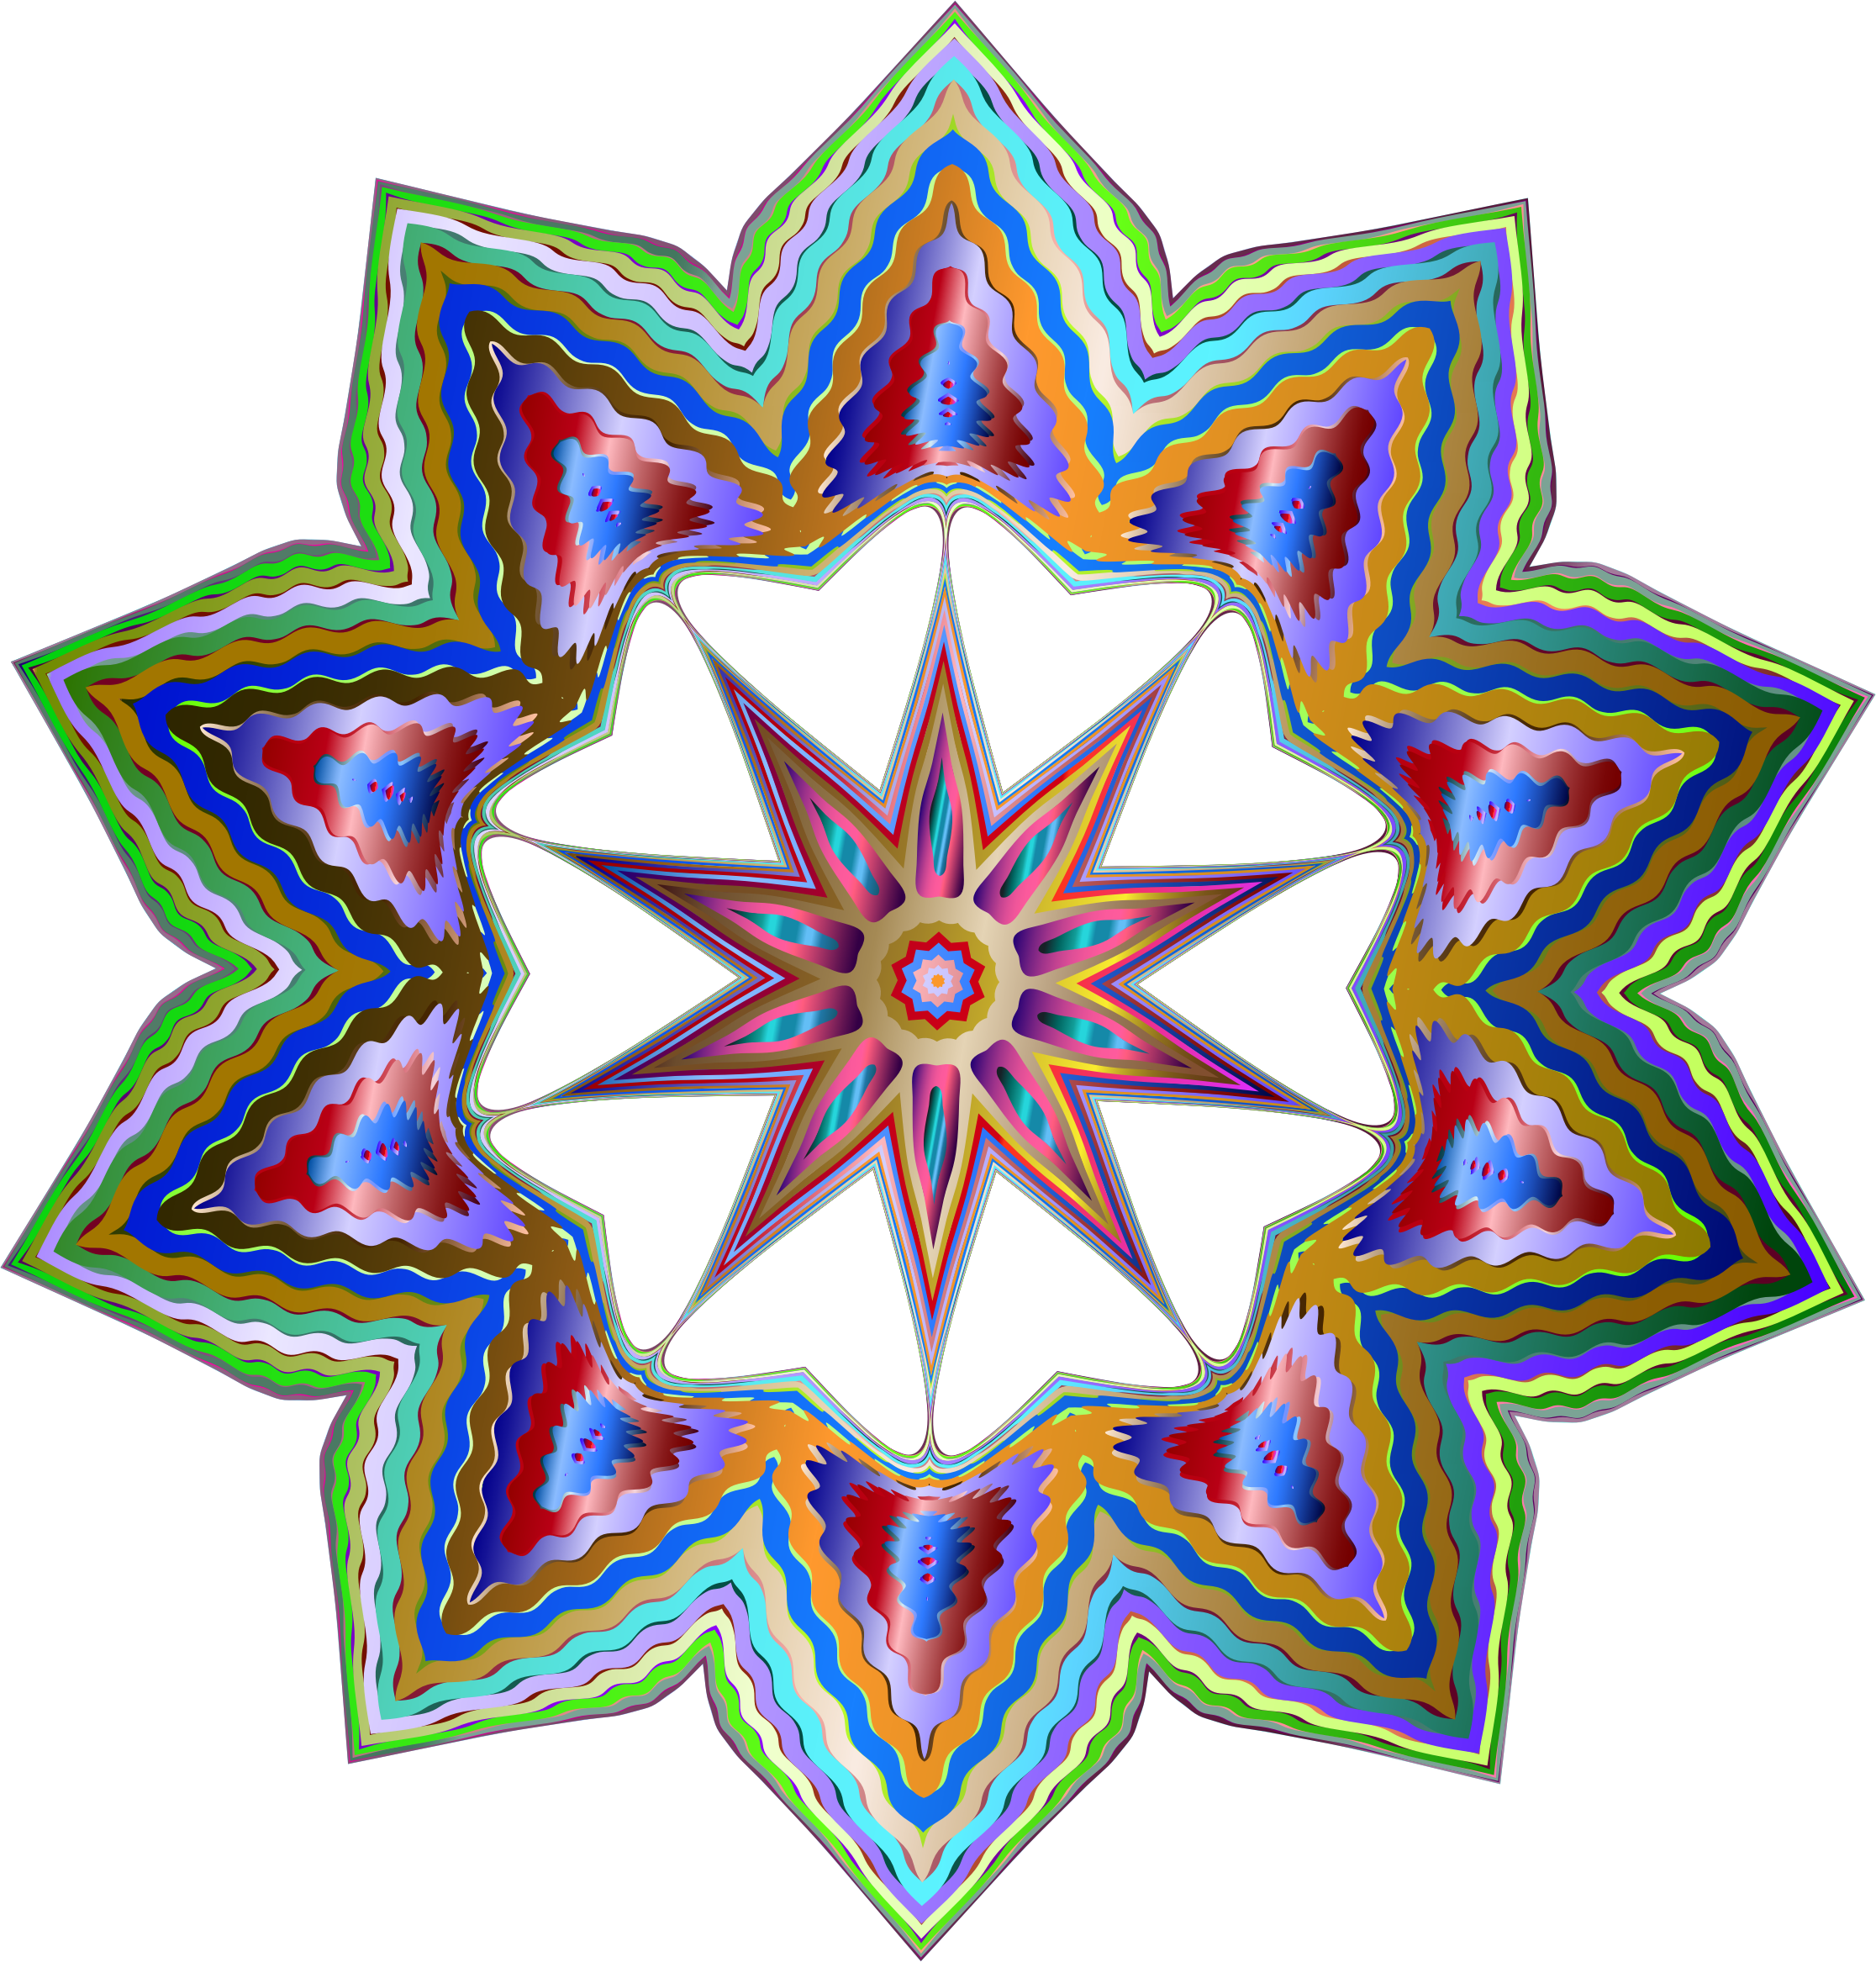 Geometry transparent free on. Frog clipart symmetrical